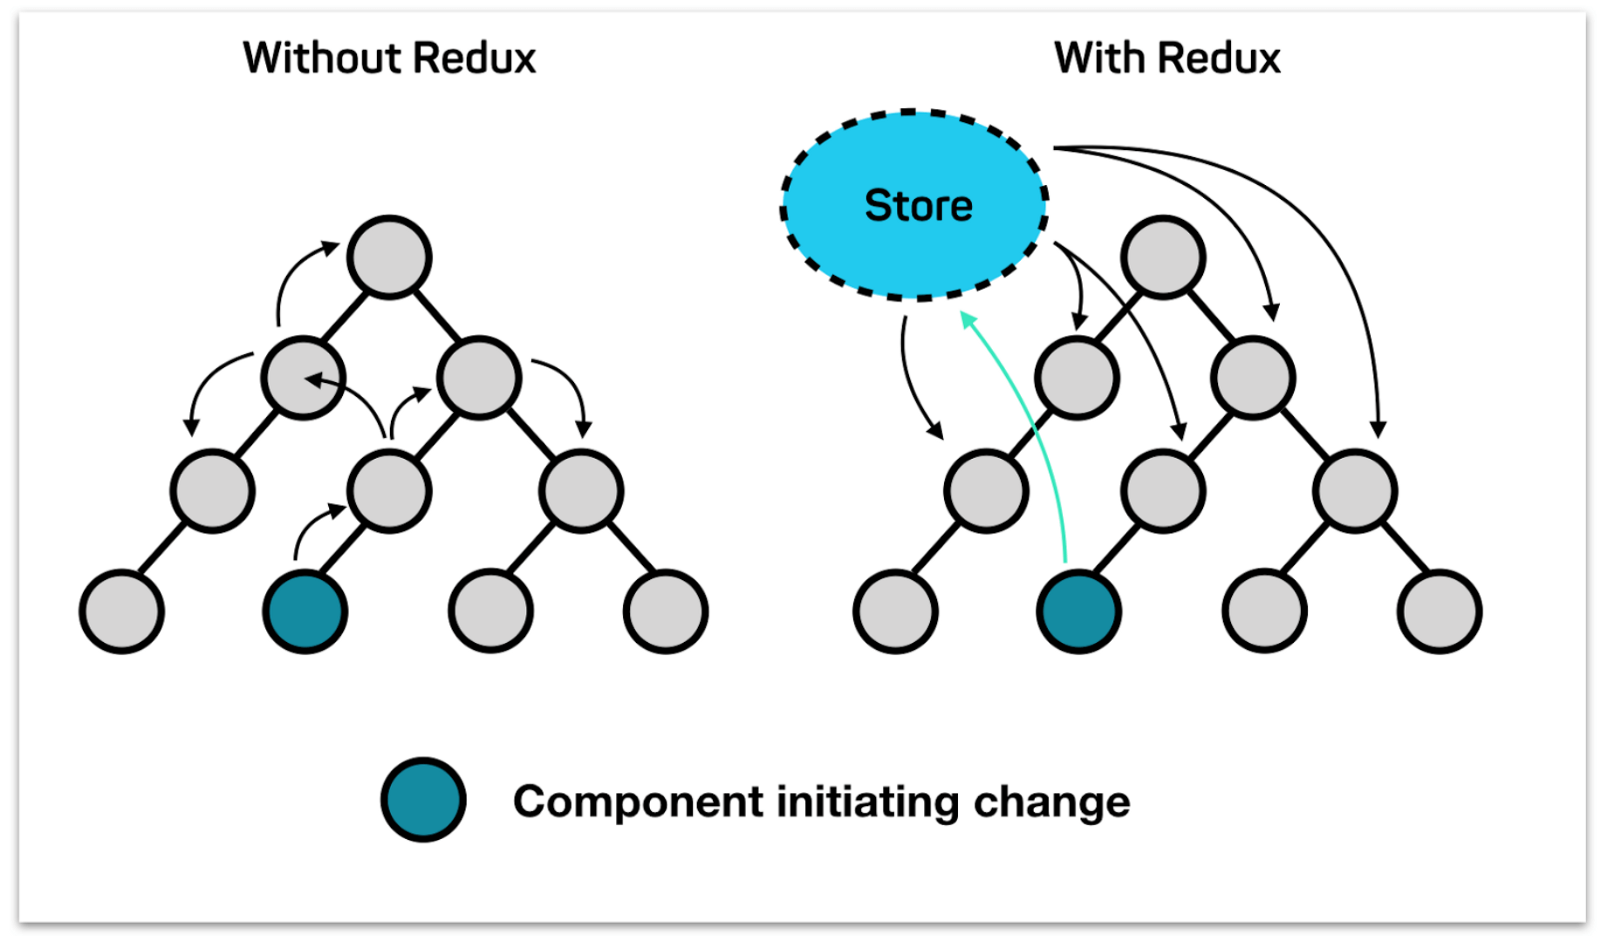 Restate — the story of Redux Tree - By